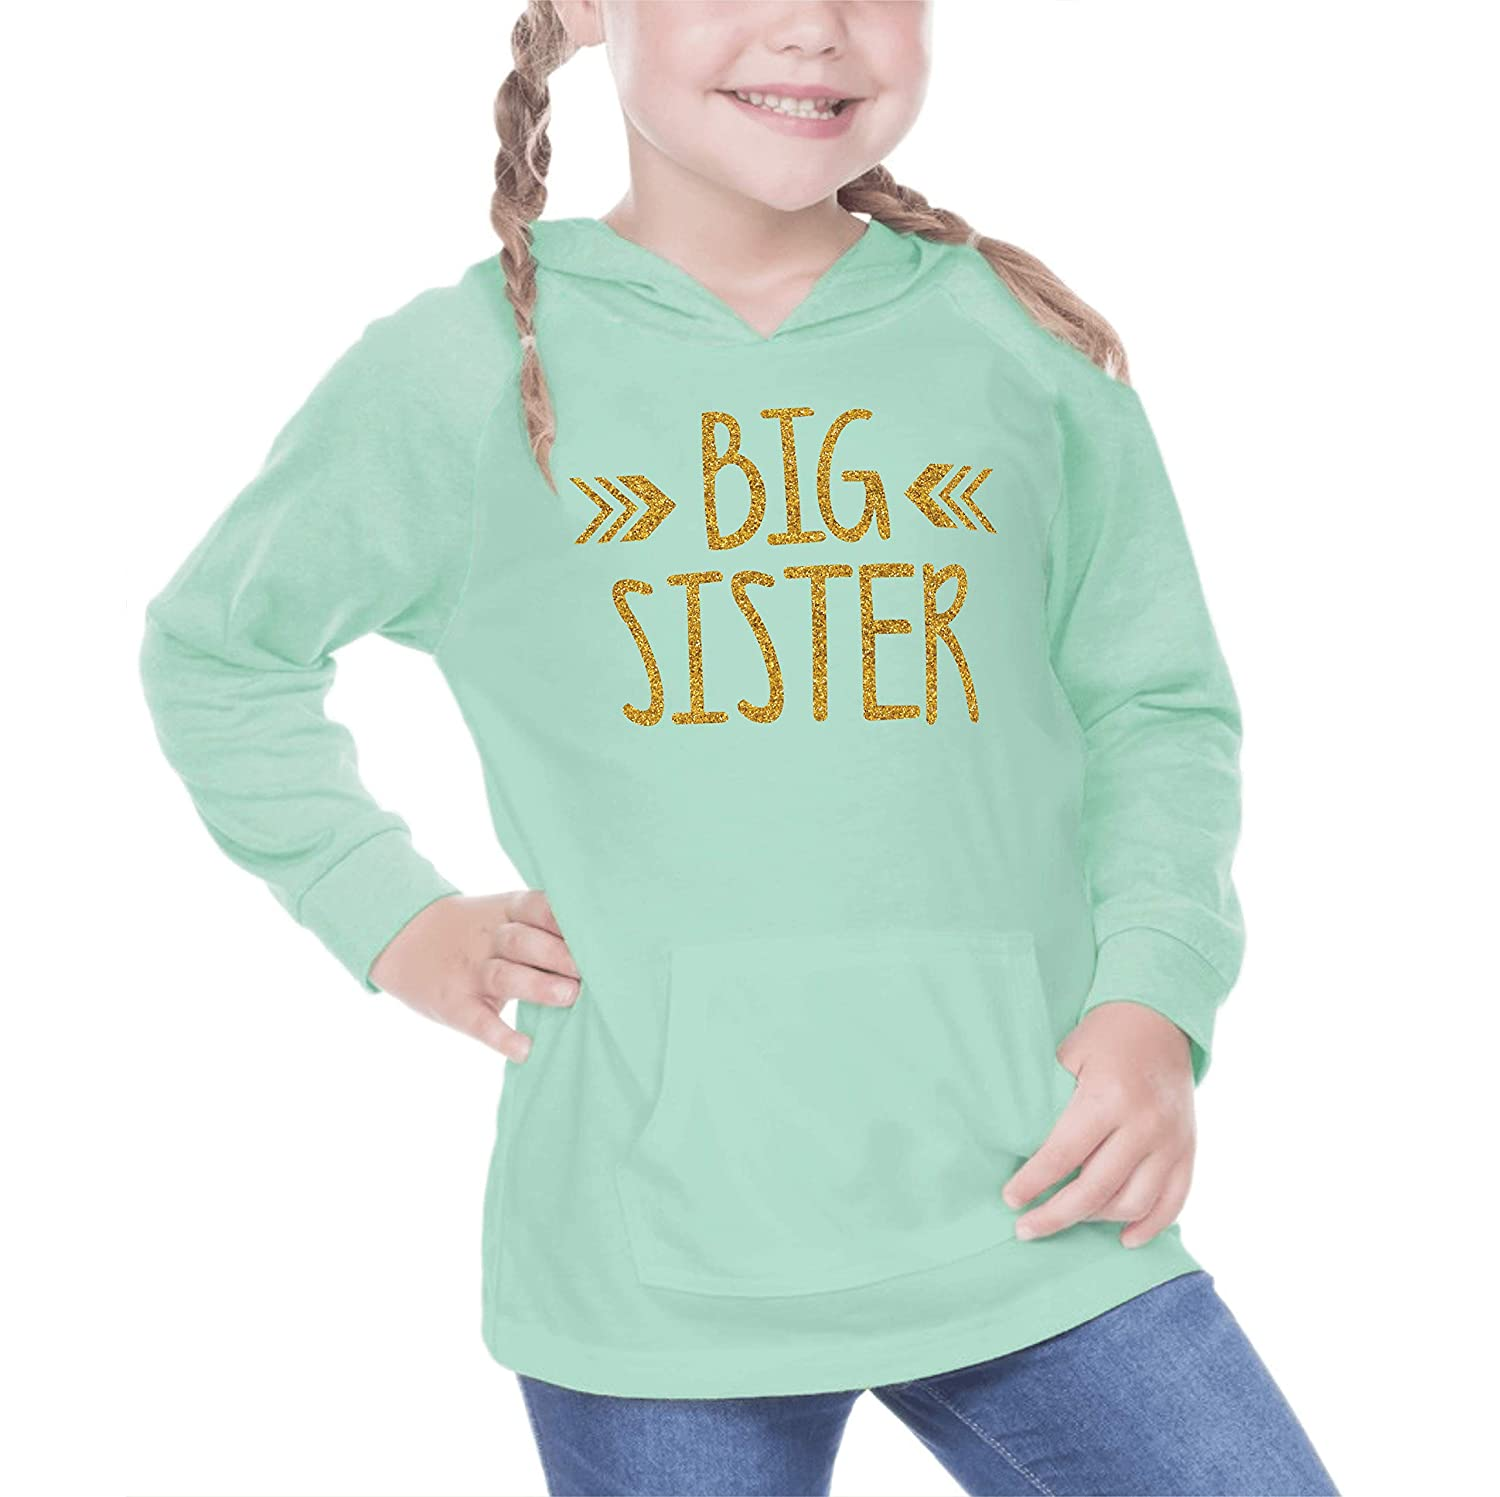 Big Sister Shirt Baby Girl Outfit Pregnancy Announcement (24 Months Ice Green)